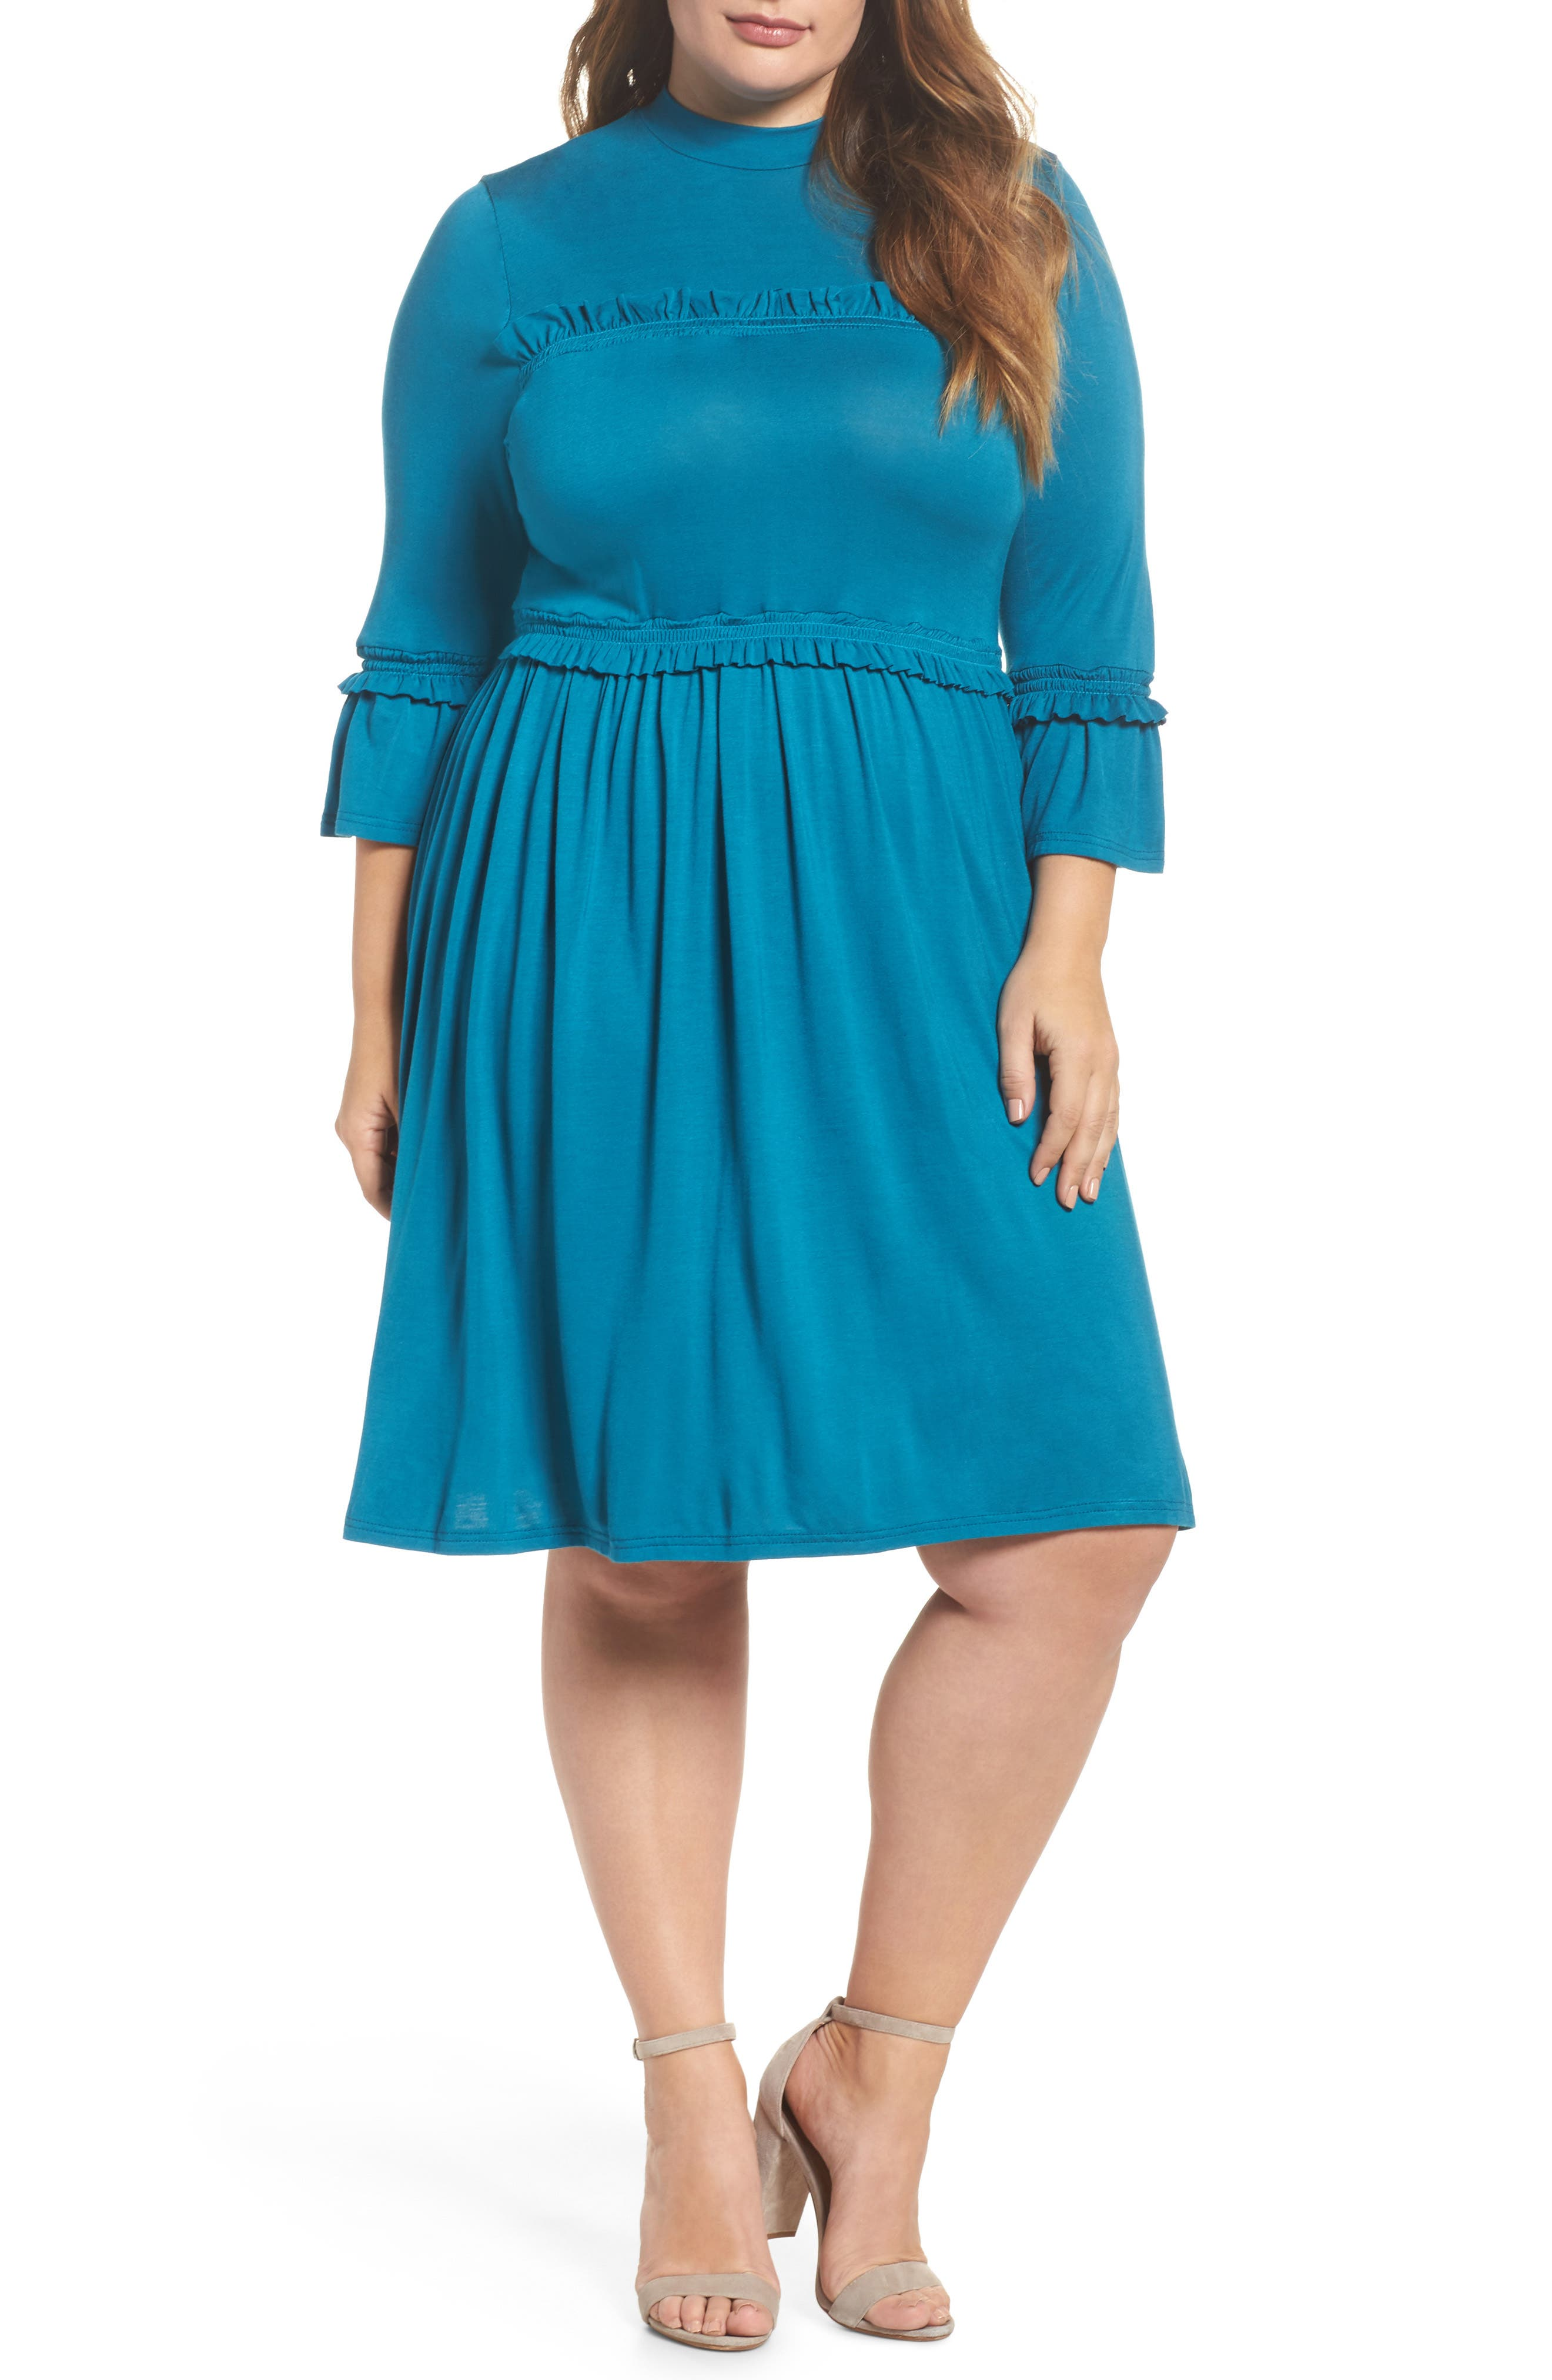 Alternate Image 1 Selected - LOST INK Double Frill Skater Dress (Plus Size)